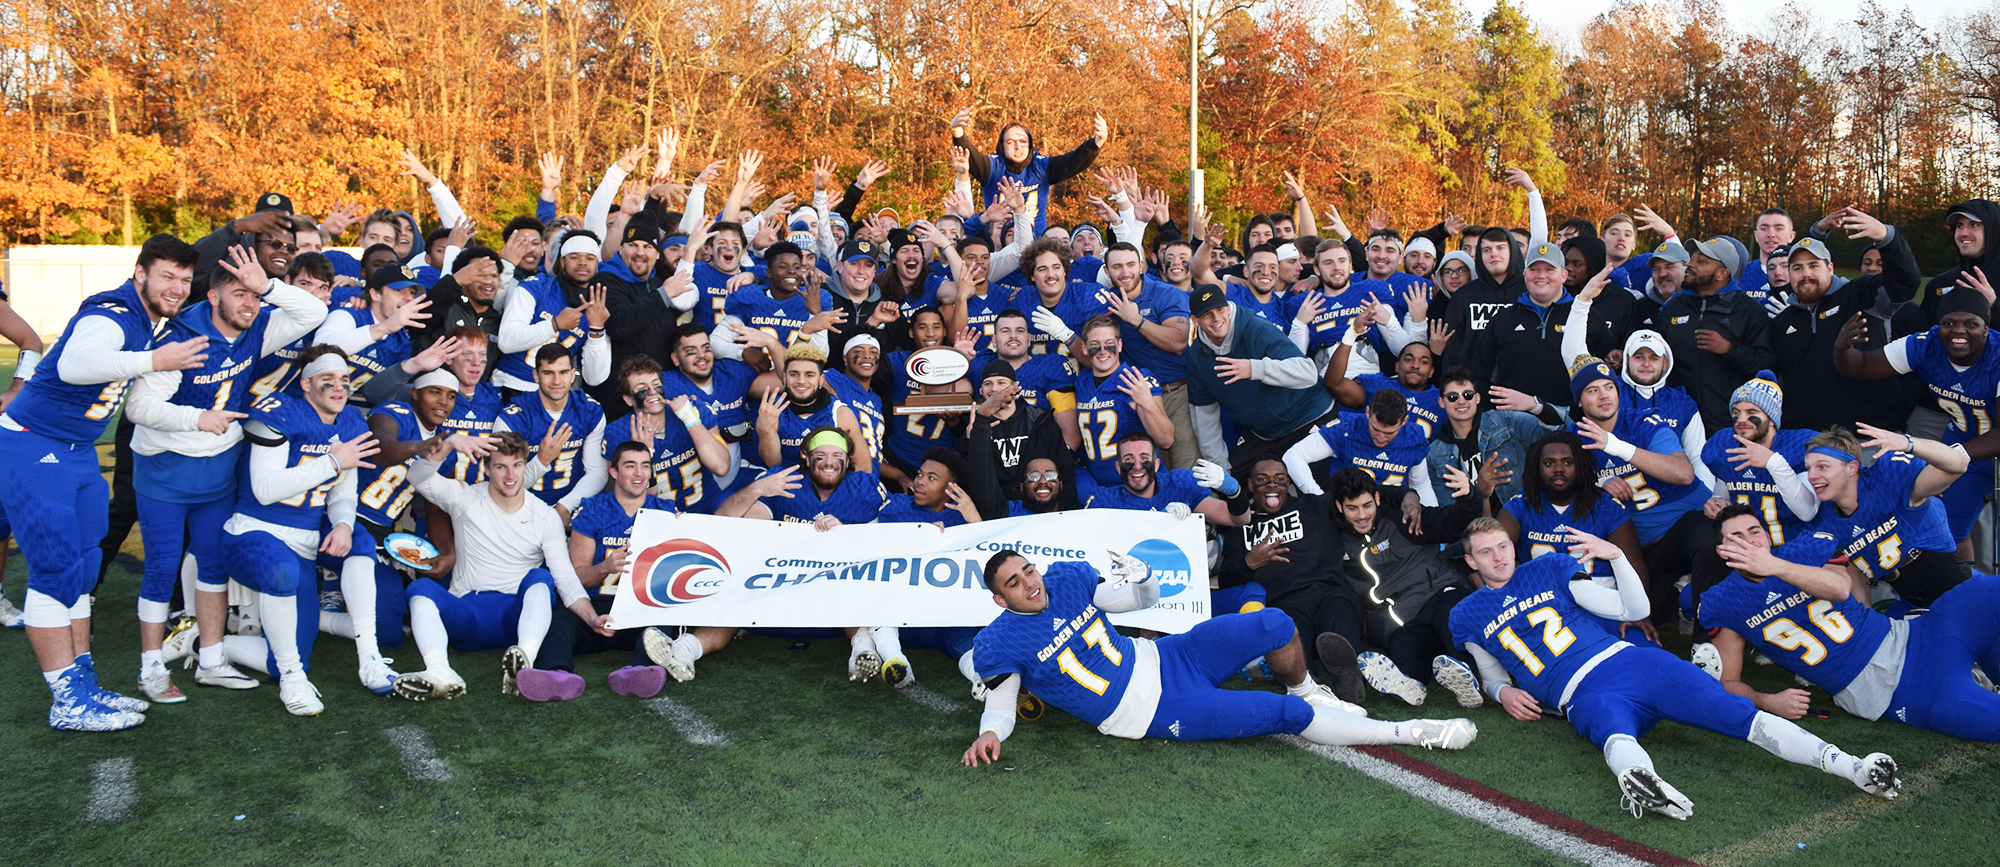 Western New England clinched its fourth straight conference title on Saturday.